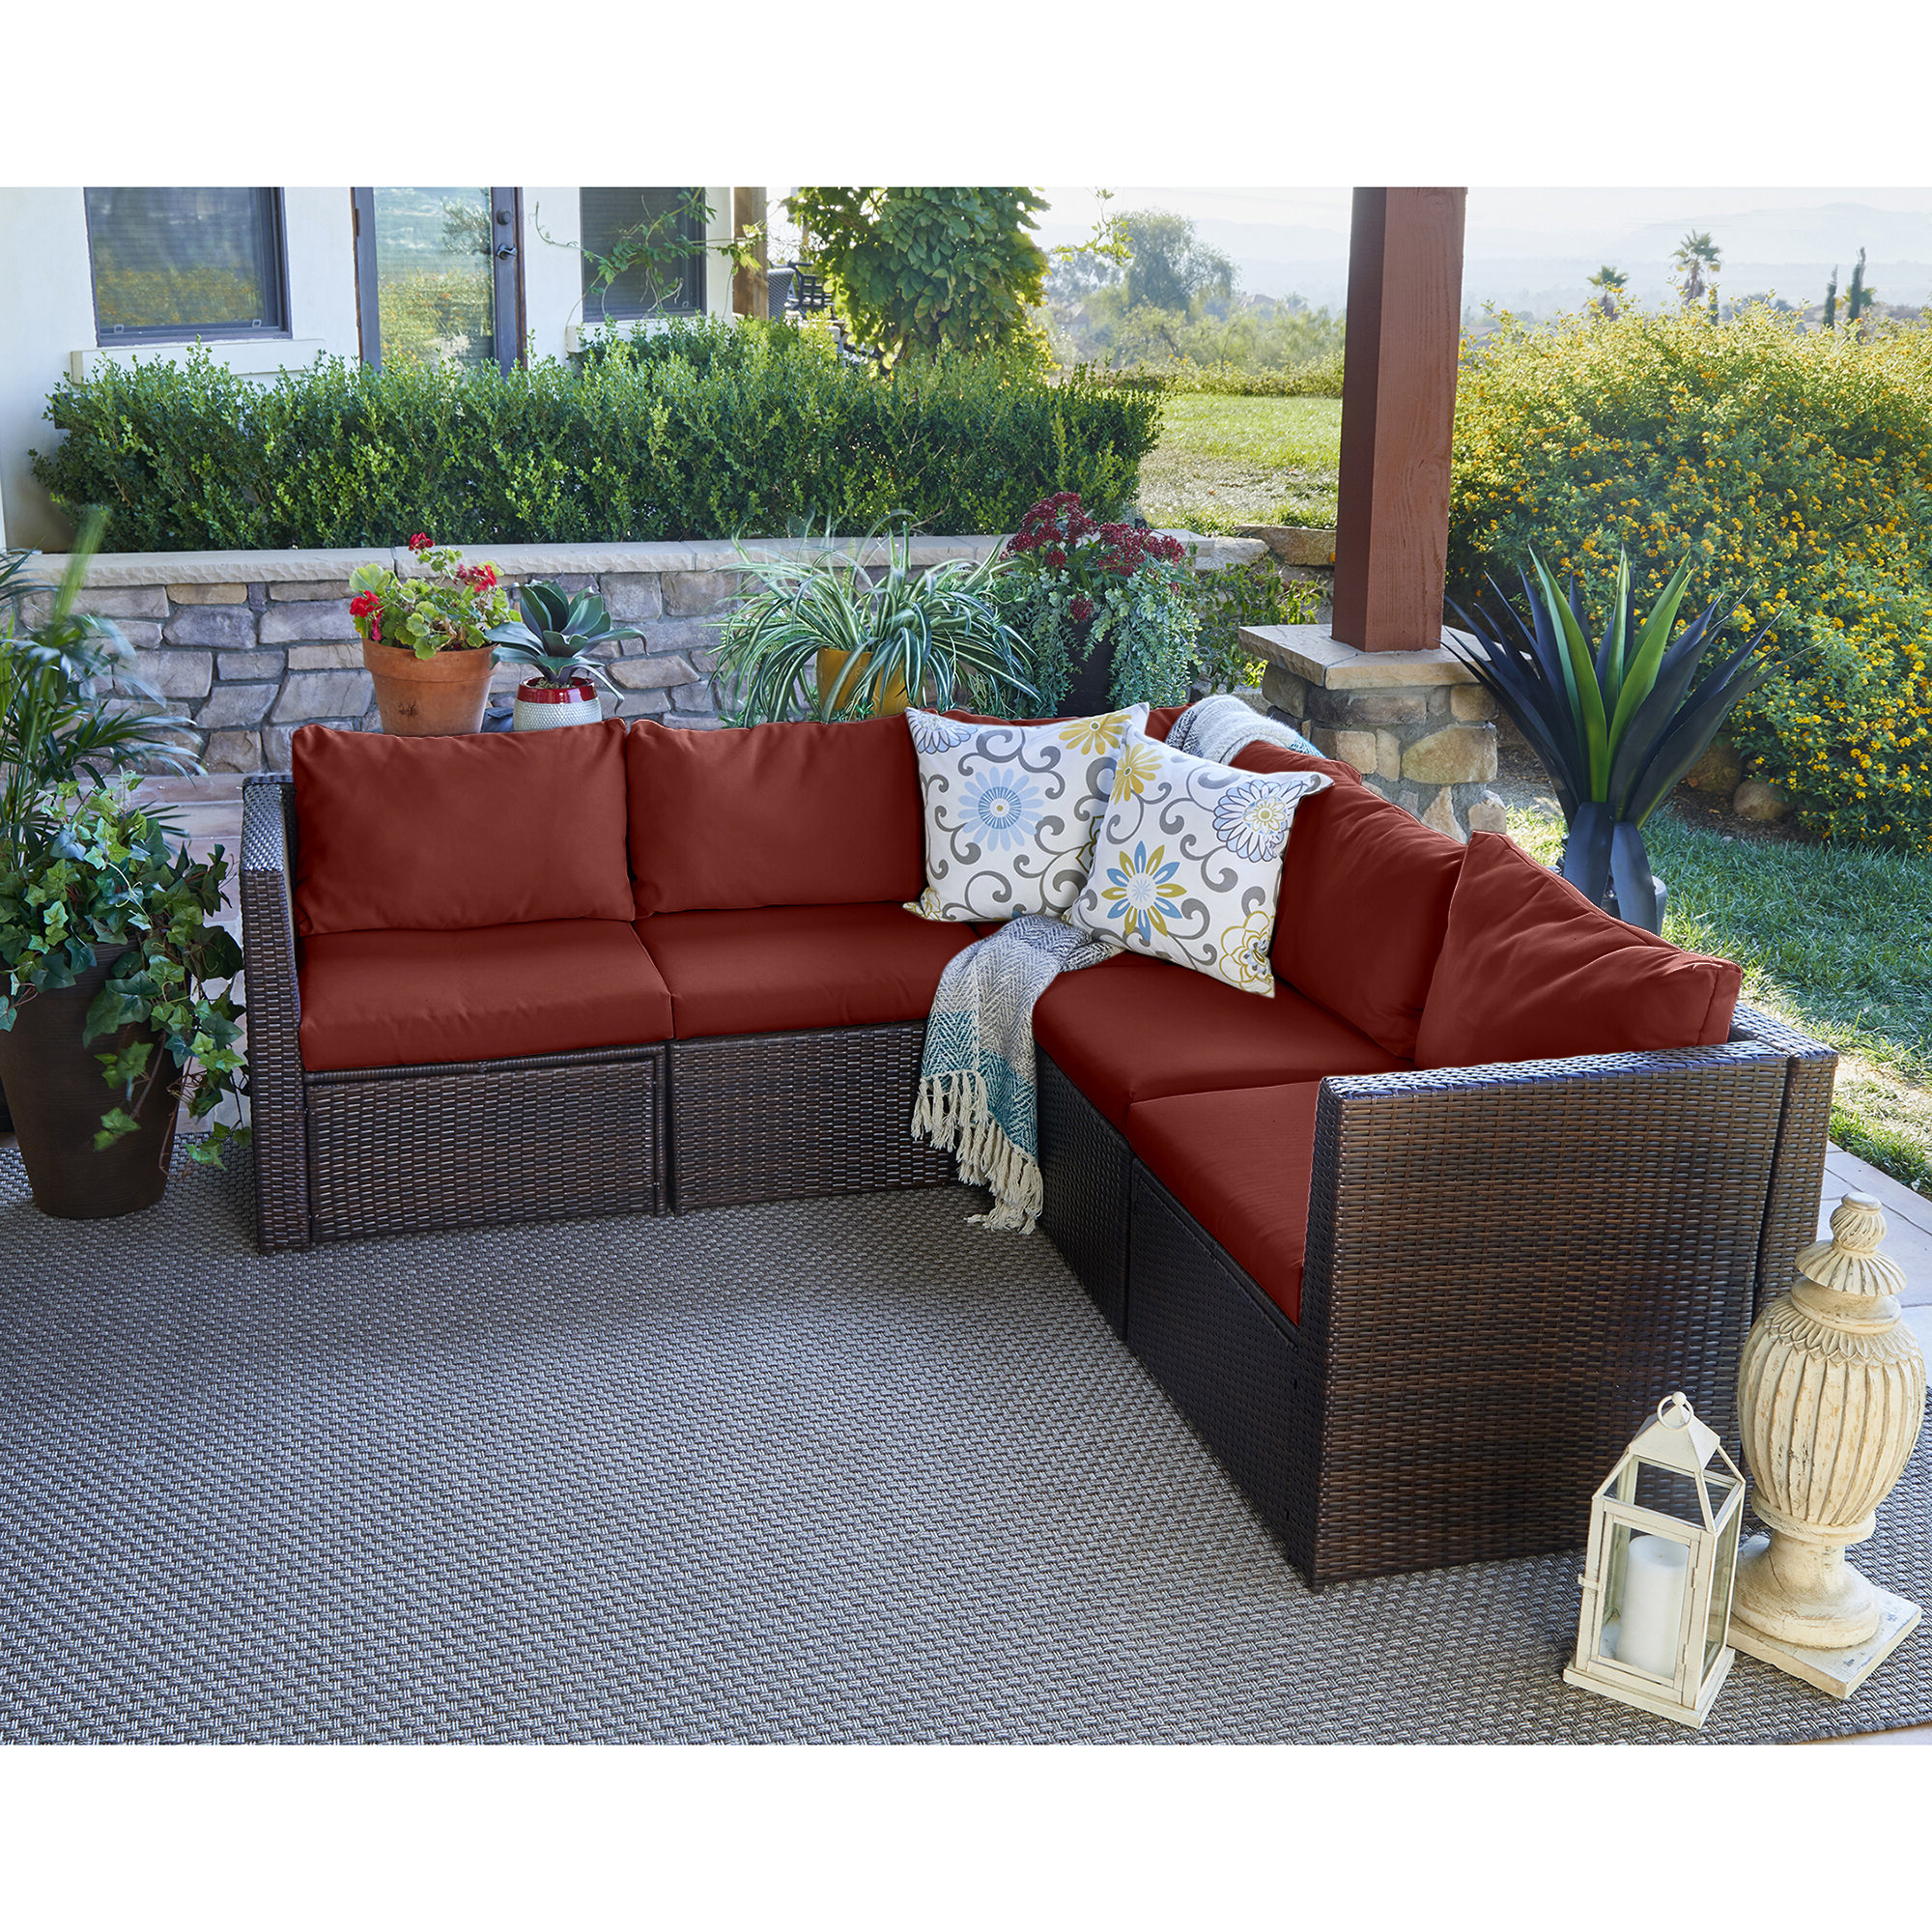 Fashionable Larsen Patio Sectional With Cushions Inside Larsen Patio Sectionals With Cushions (View 4 of 20)